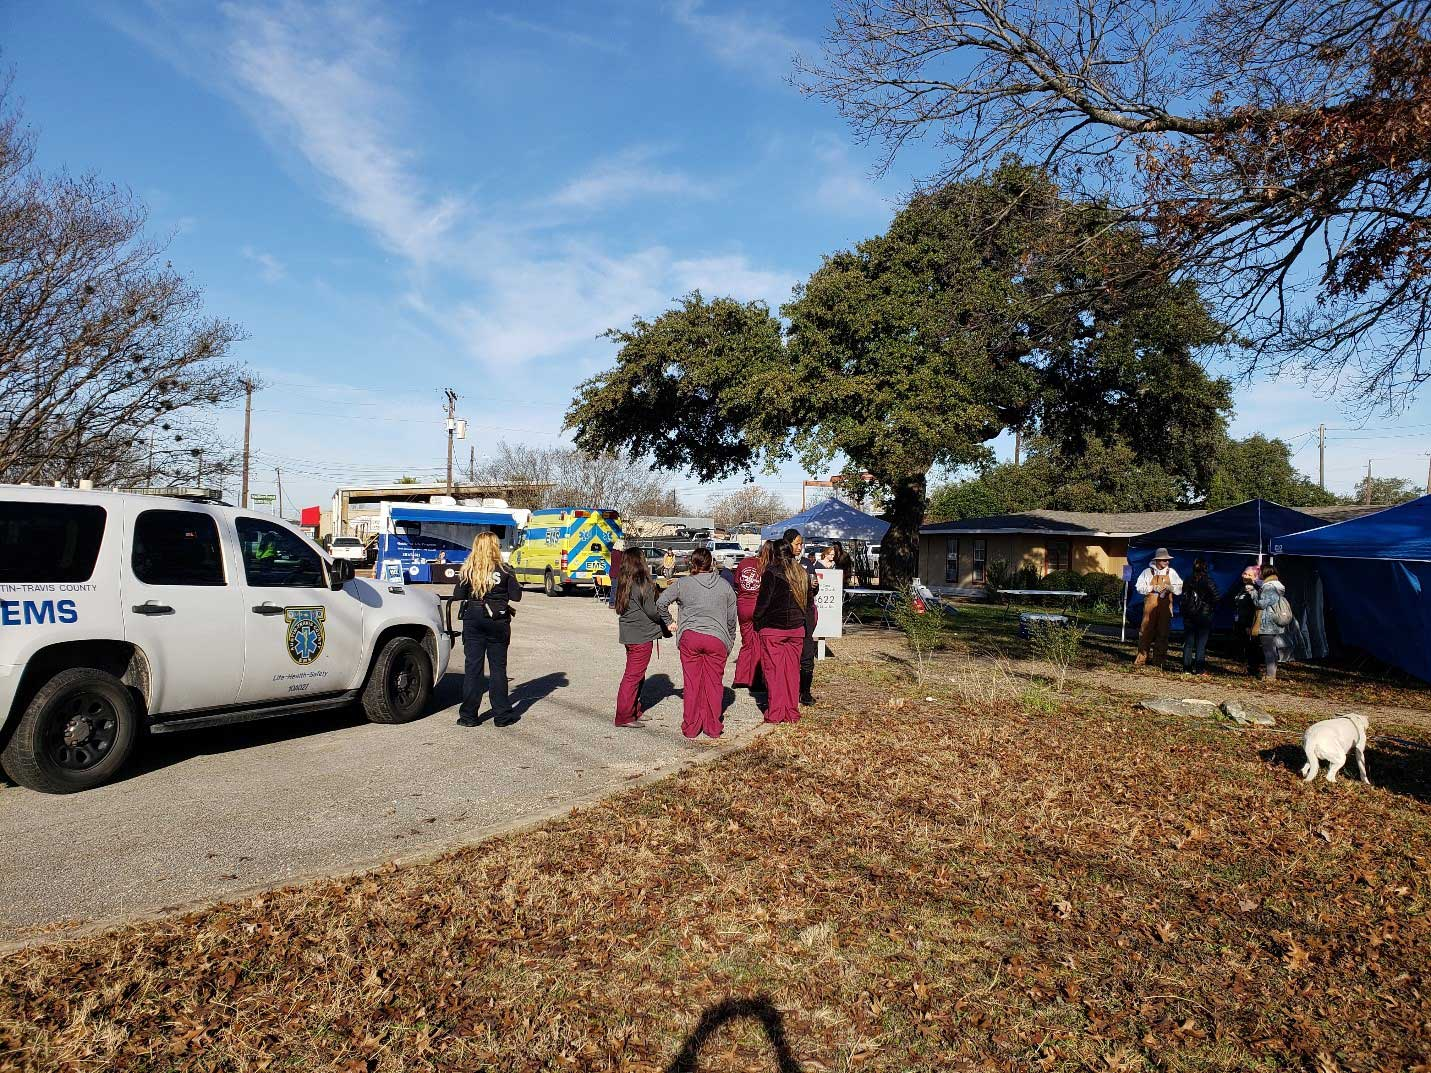 pop-up clinic: EMS vehicles and staff, pop-up clinic tents on background